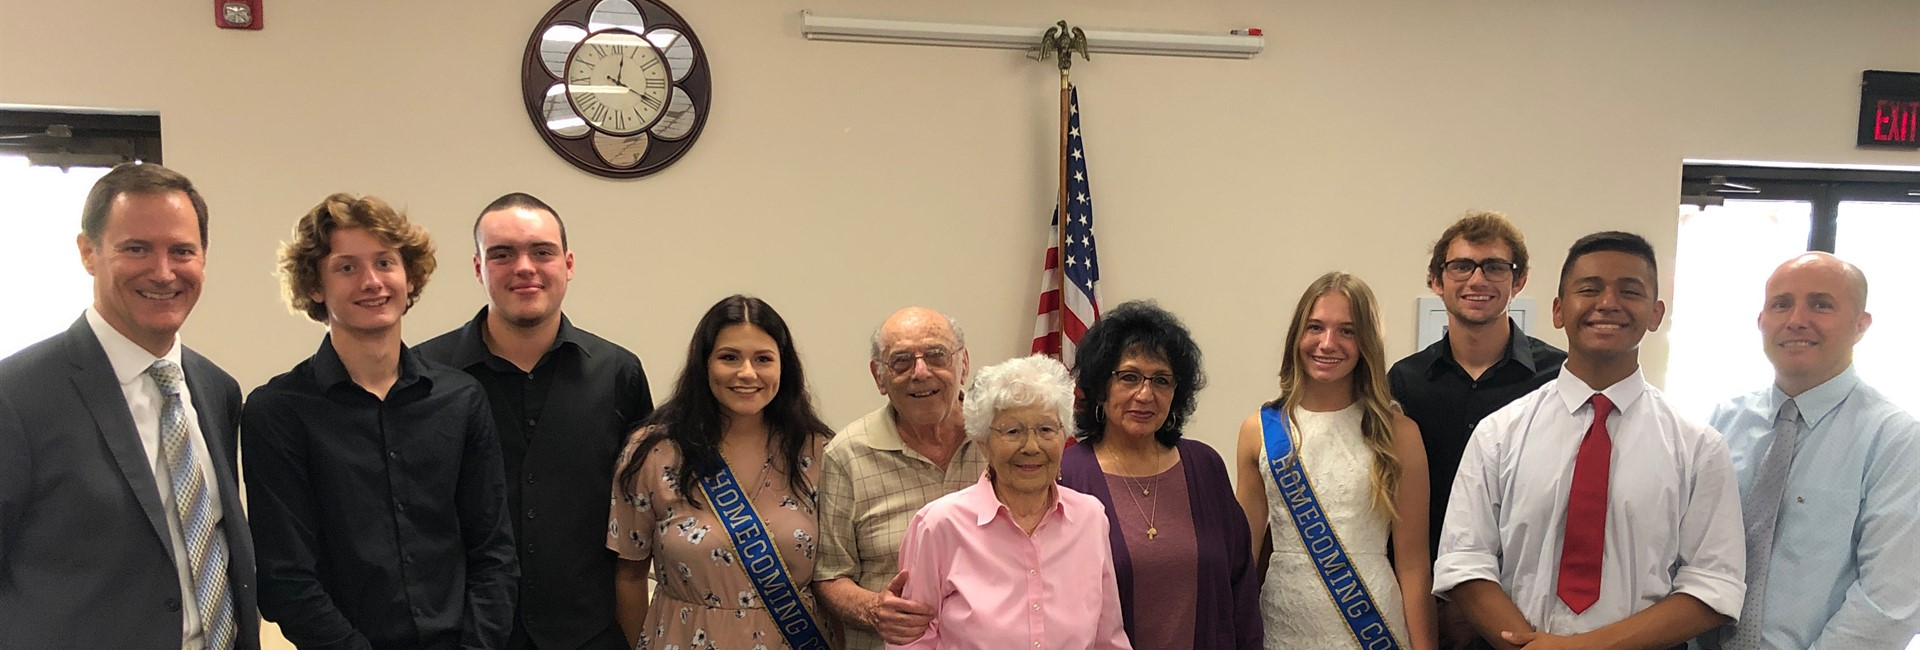 Members of 2020 Homecoming Court Visit Senior Center